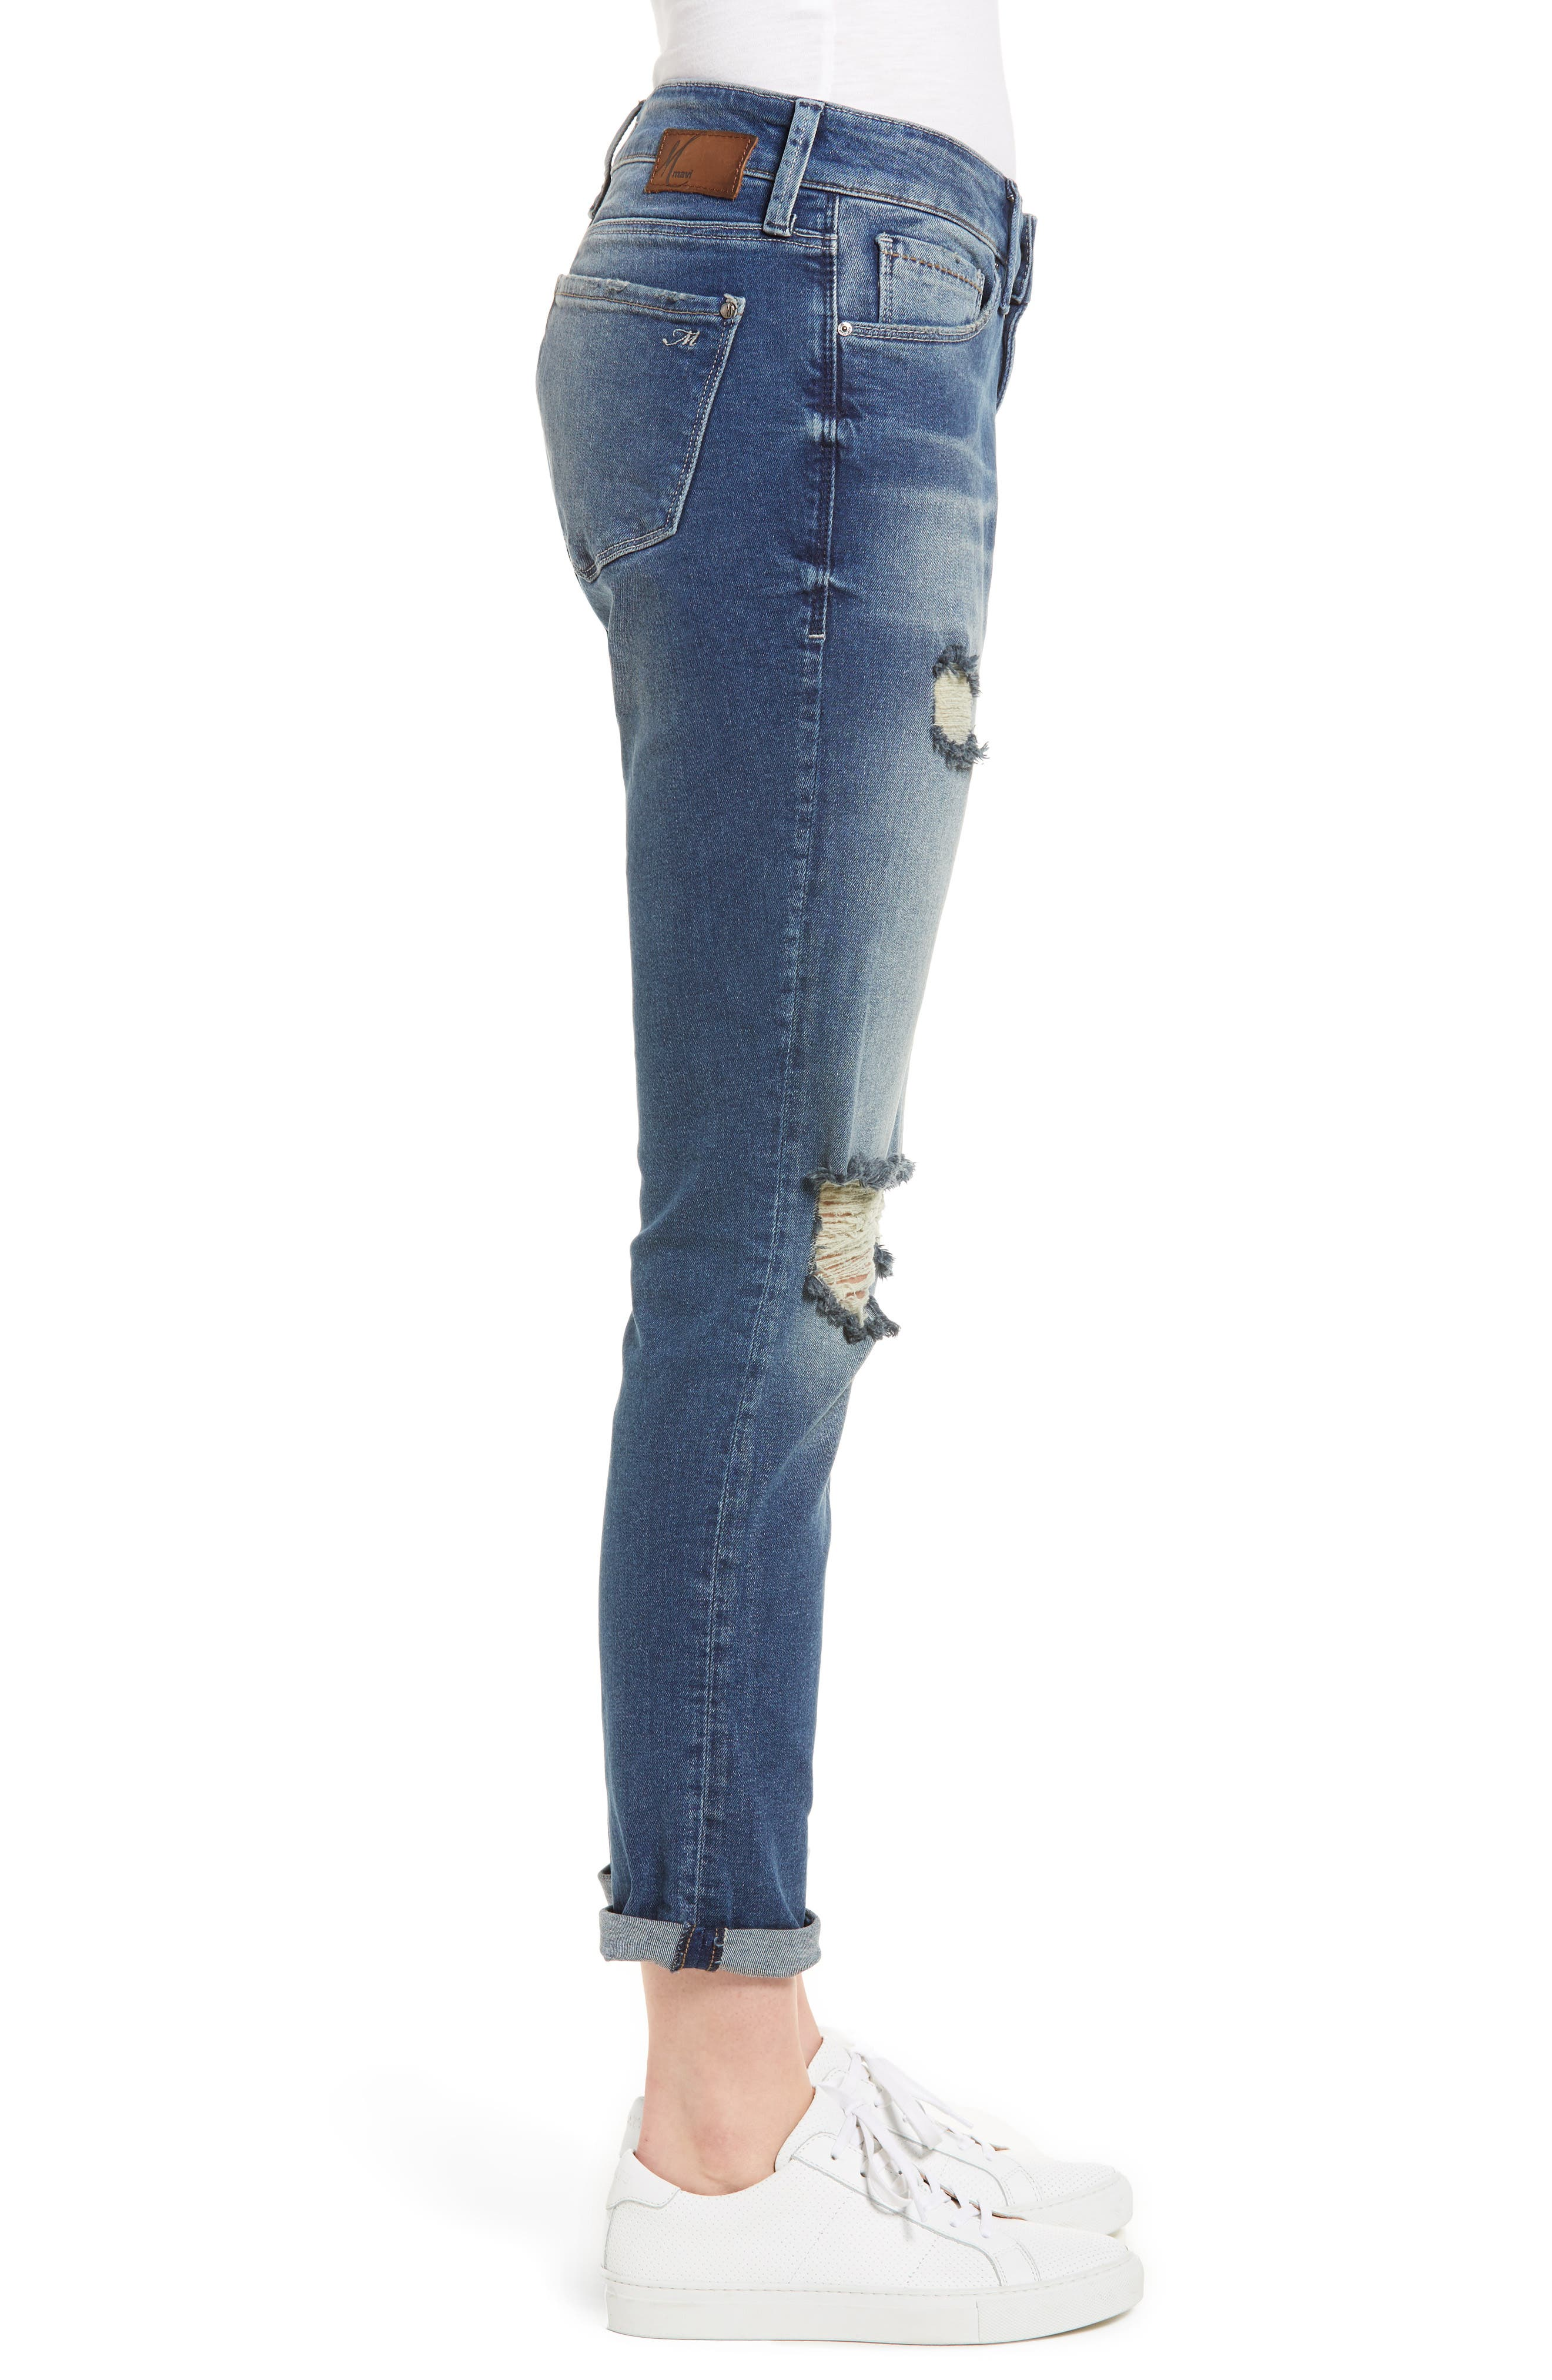 Ada Ripped Boyfriend Jeans,                             Alternate thumbnail 3, color,                             Mid Ripped Vintage